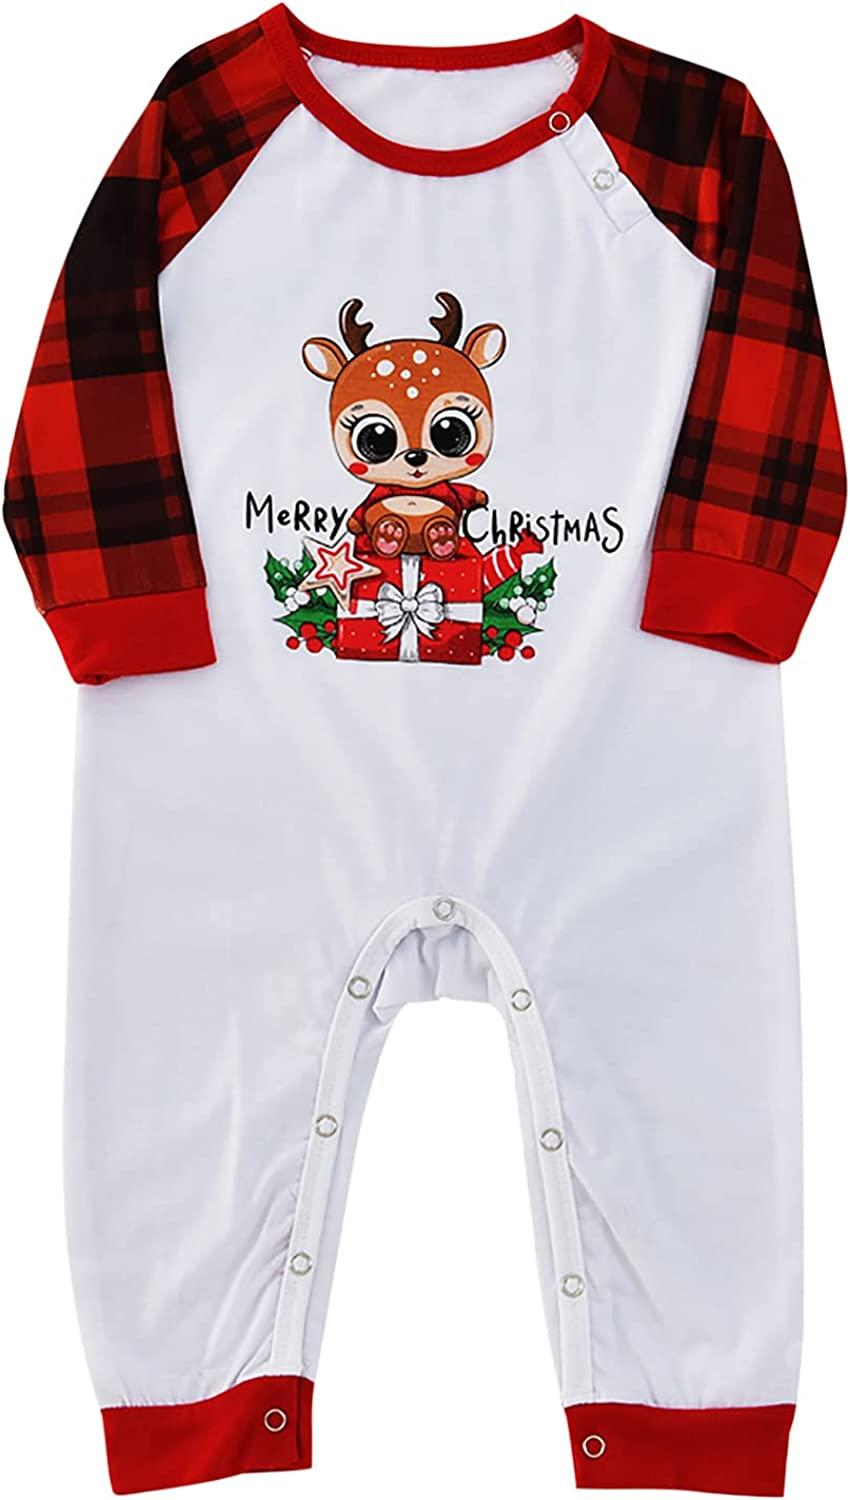 Excellent Father And Son Matching Outfits Blouse Printed Ranking TOP1 Christmas Men Dad